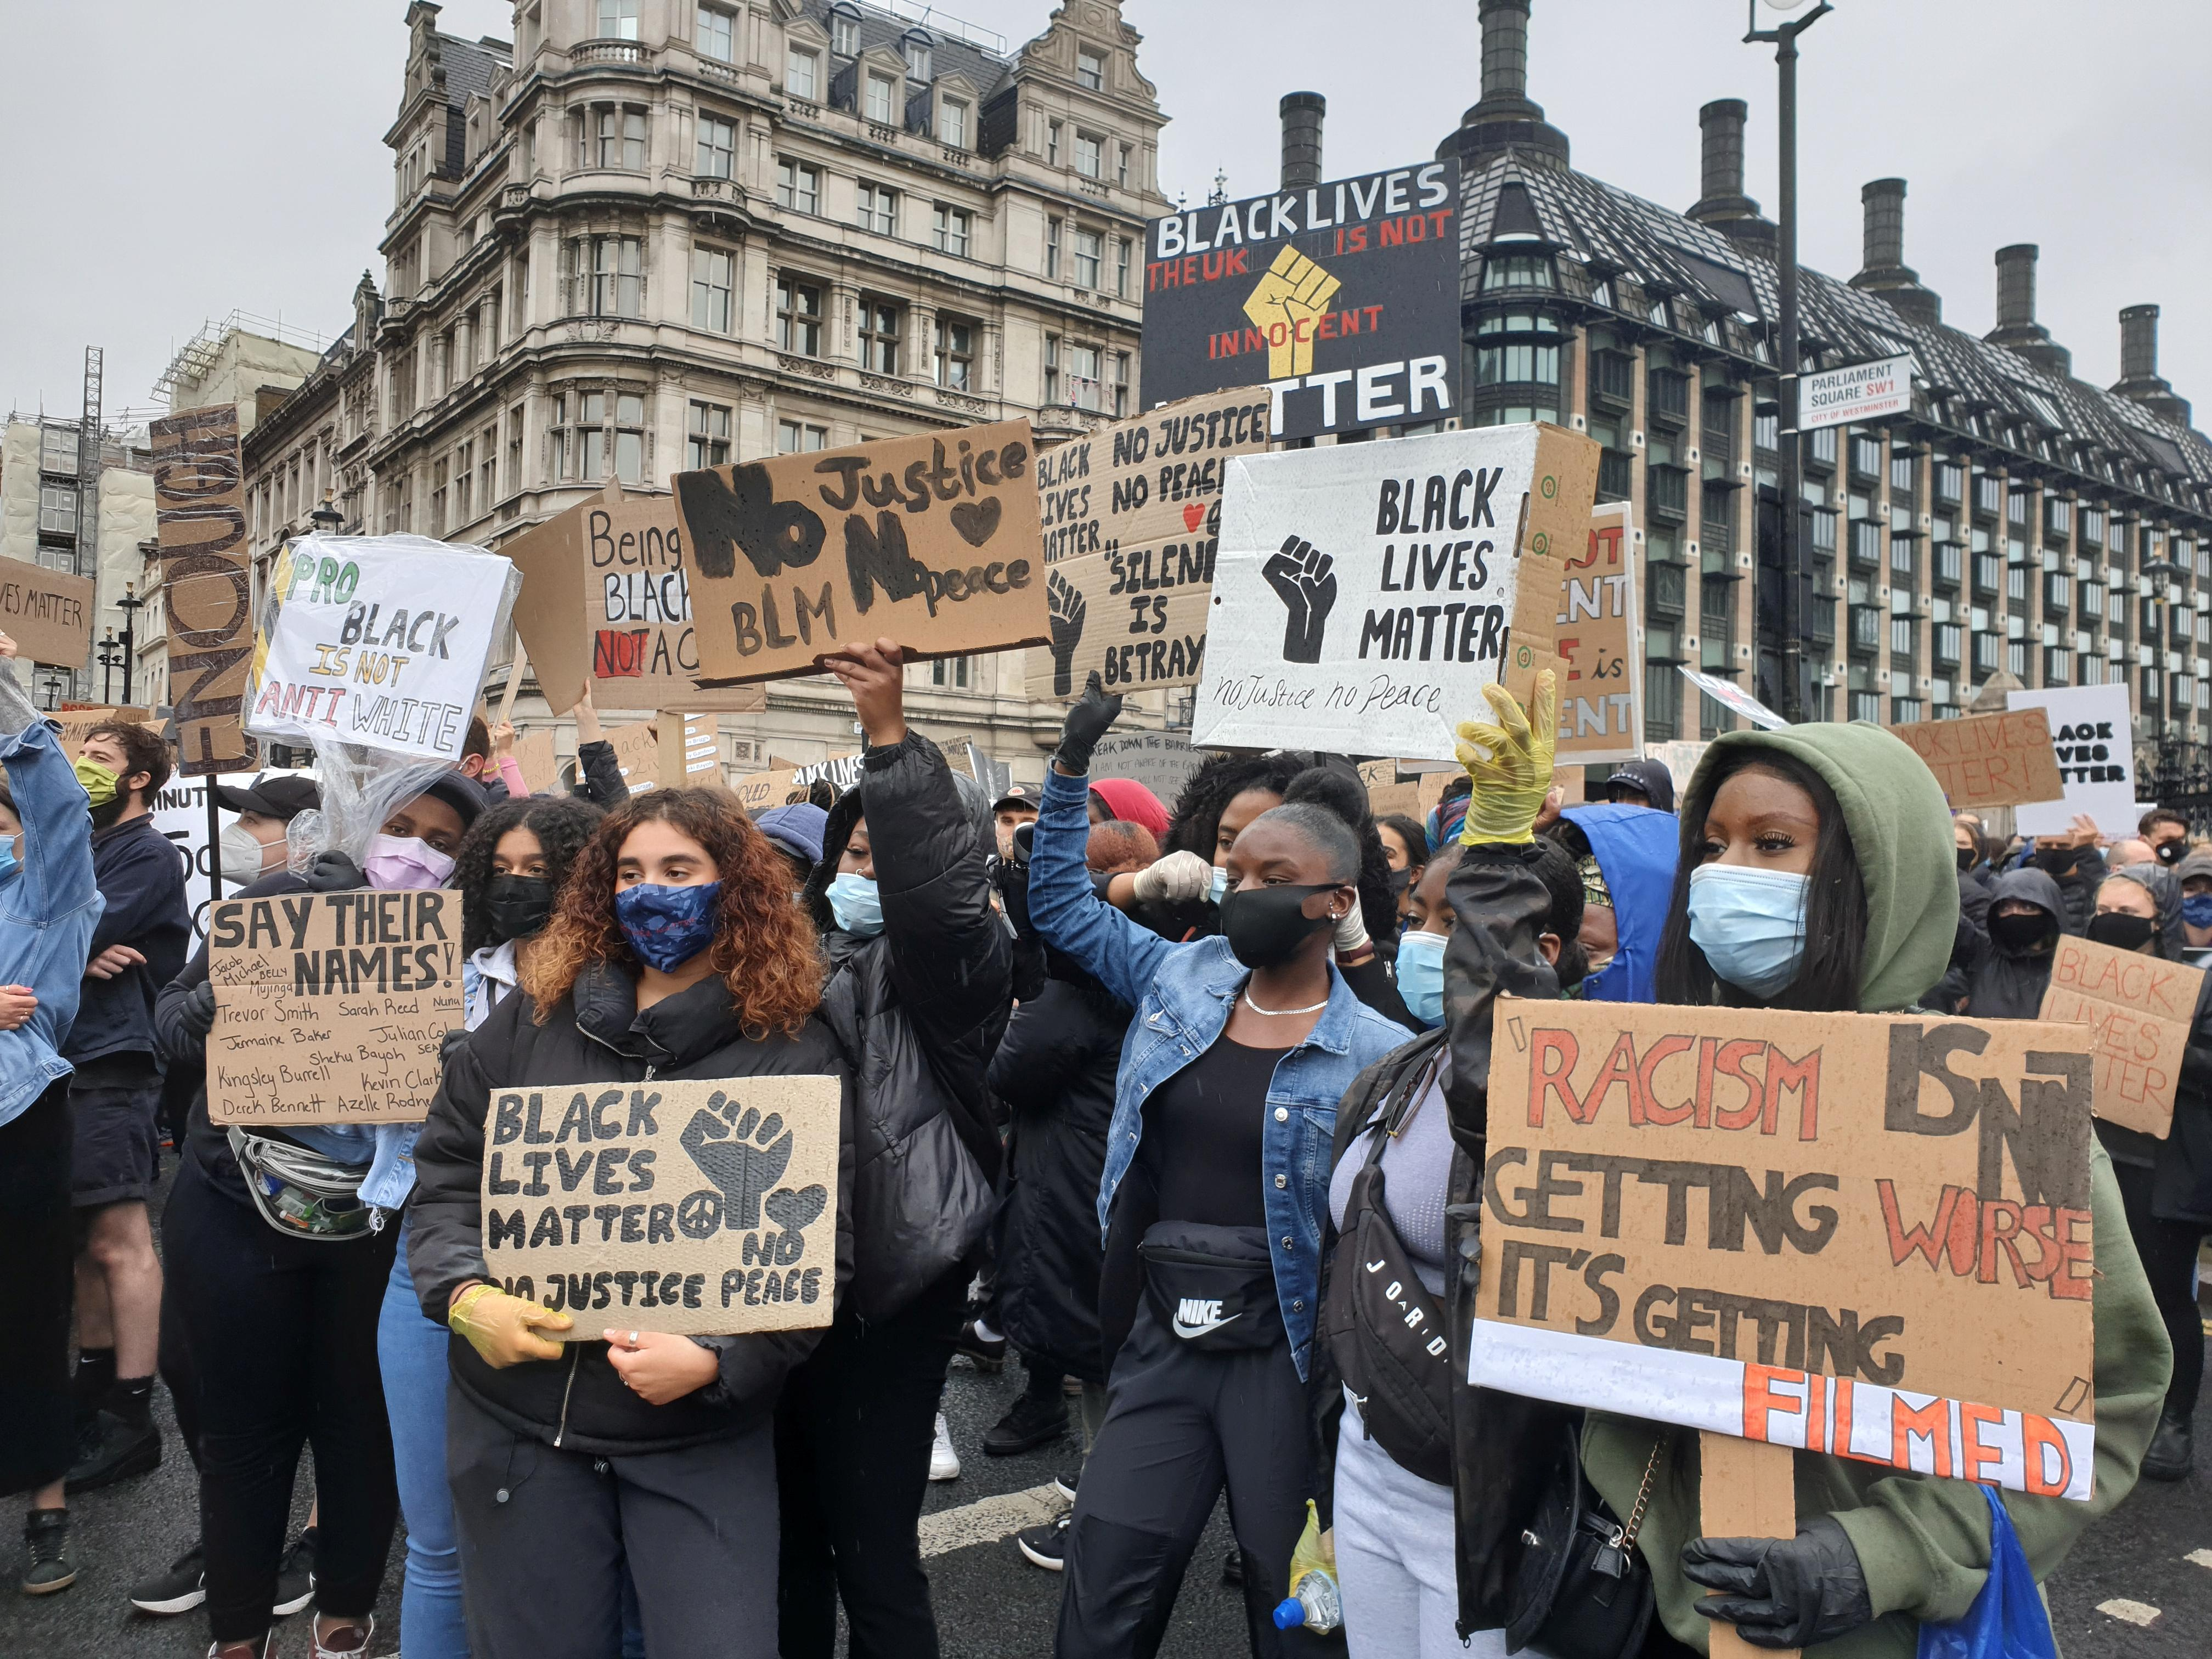 UK anti-racism protesters clash with mounted police - Reuters